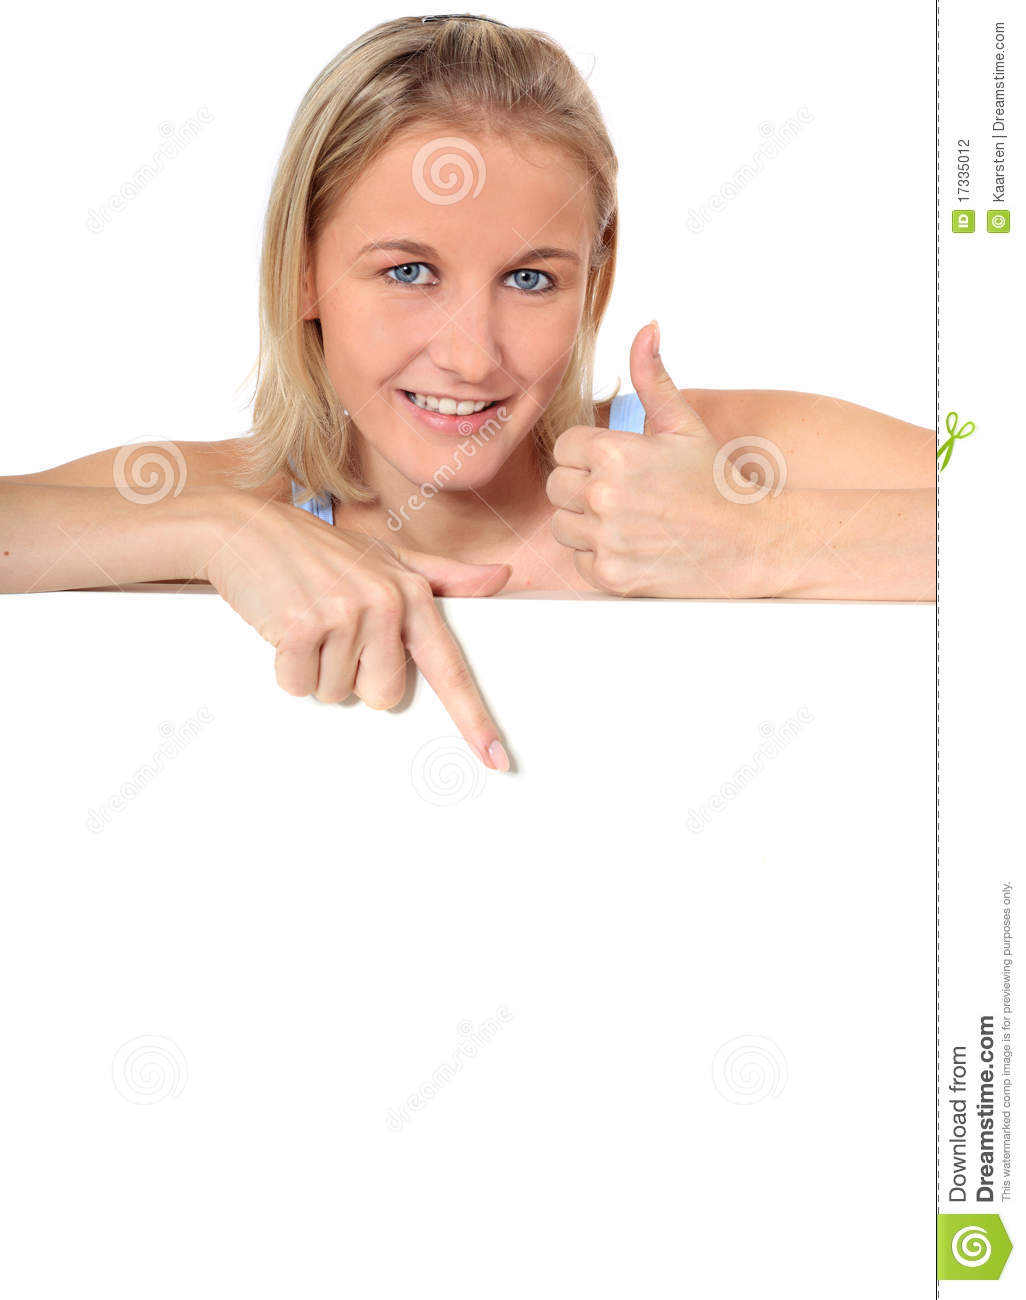 Attractive young woman points down blank sign